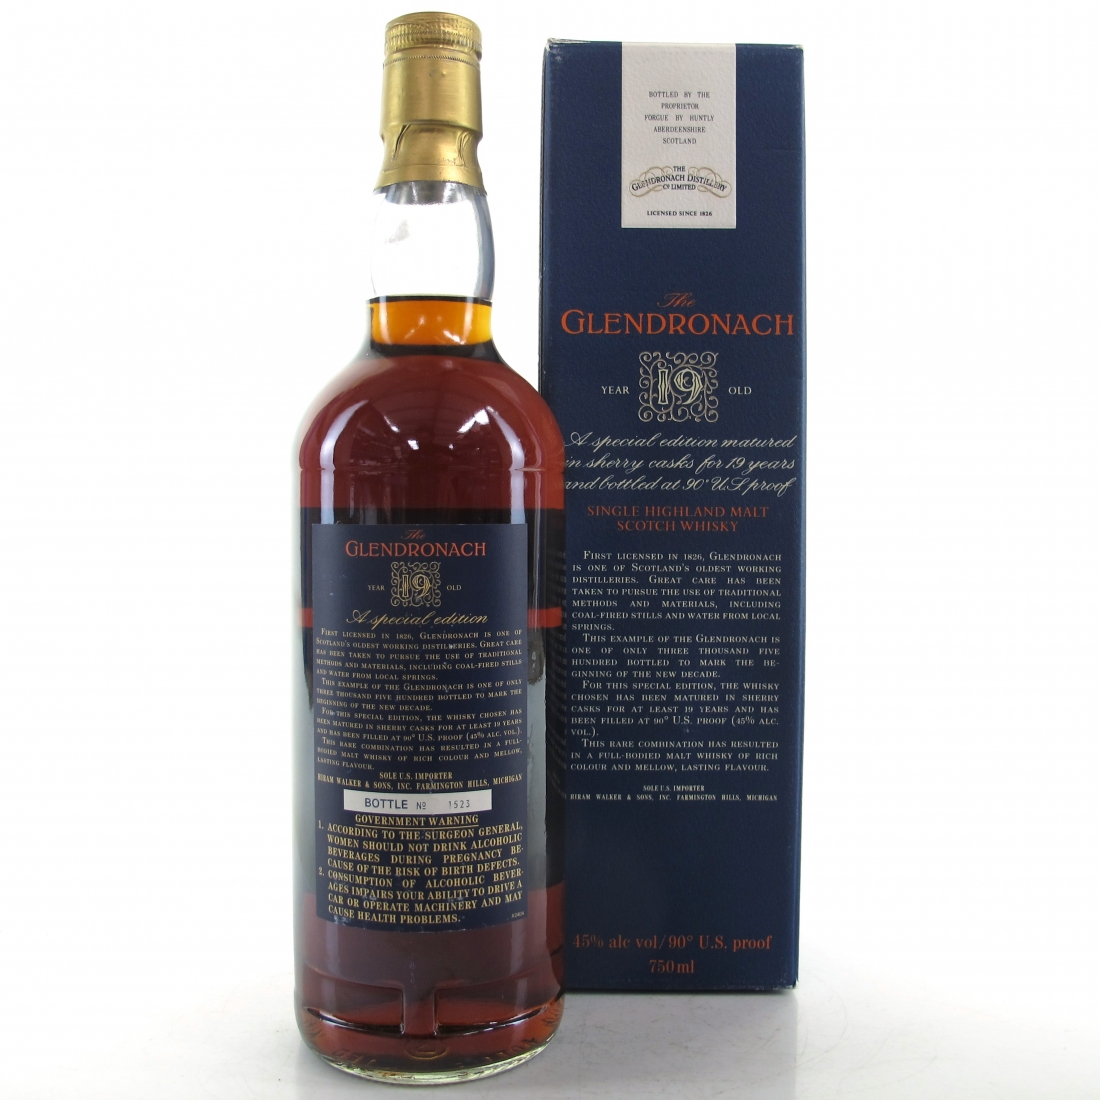 Glendronach 19 Year Old Special Edition 1989 / US Import